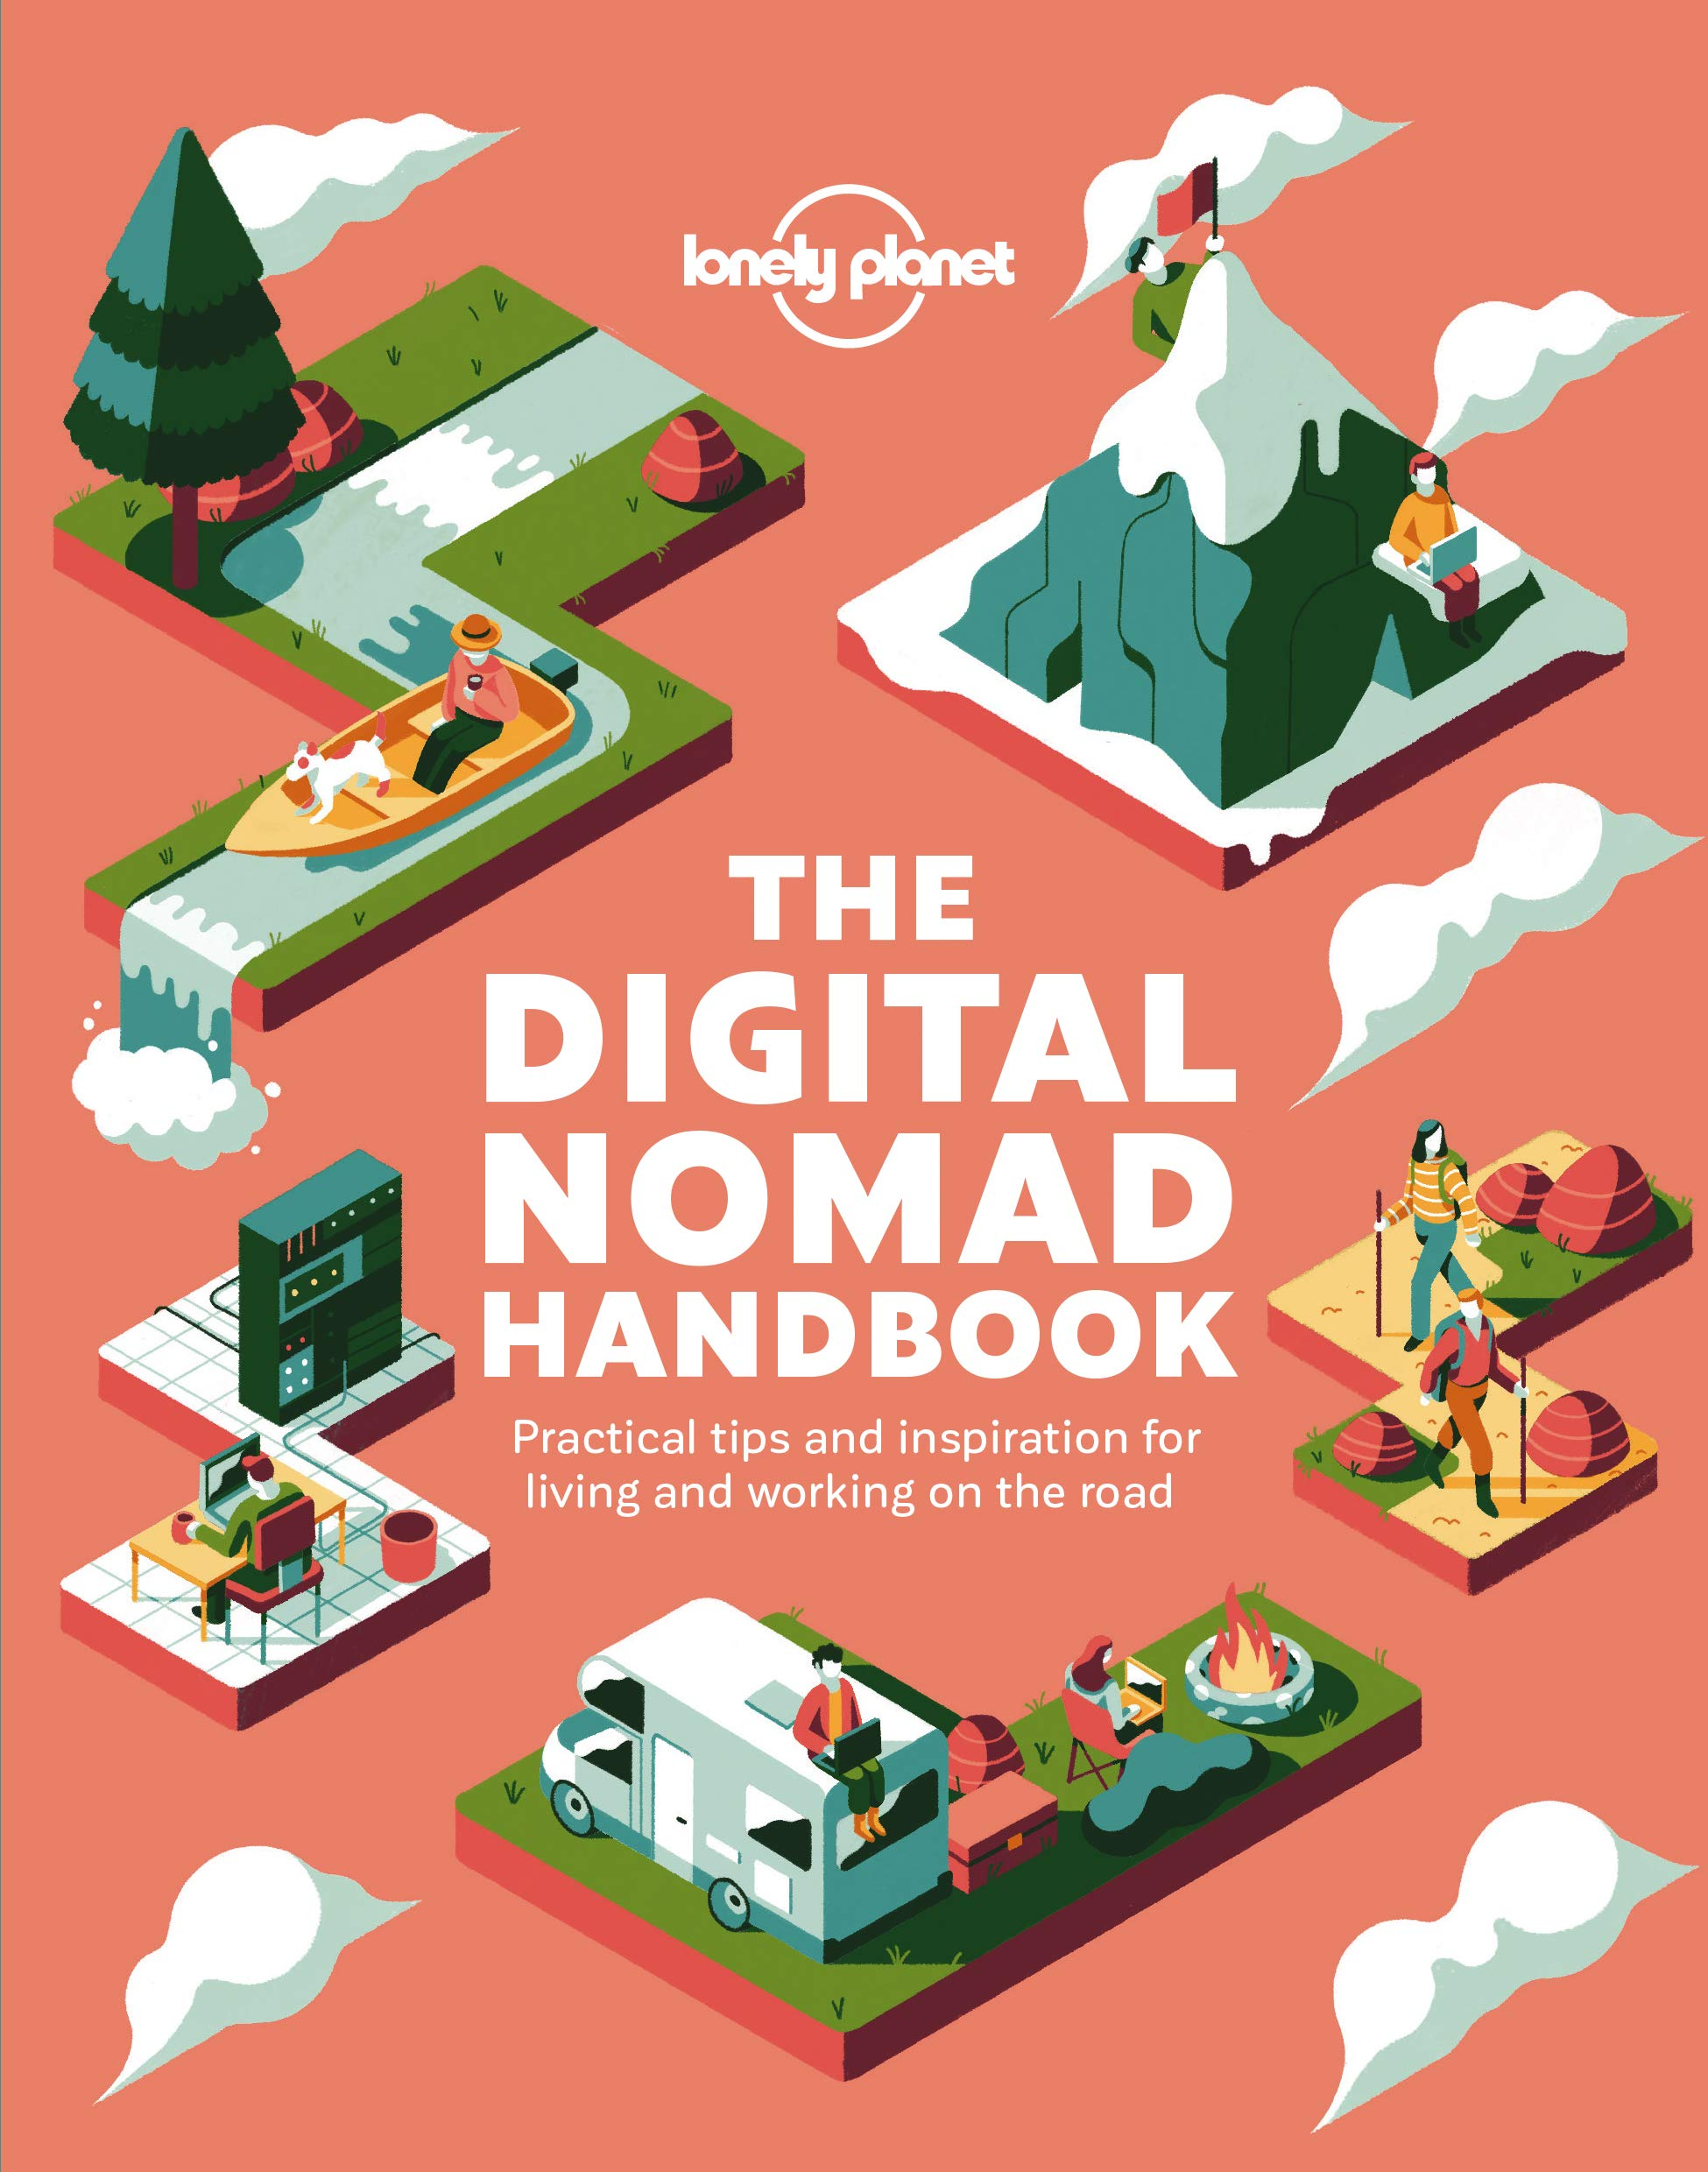 The Digital Nomad Handbook (Lonely Planet) por Lonely Planet